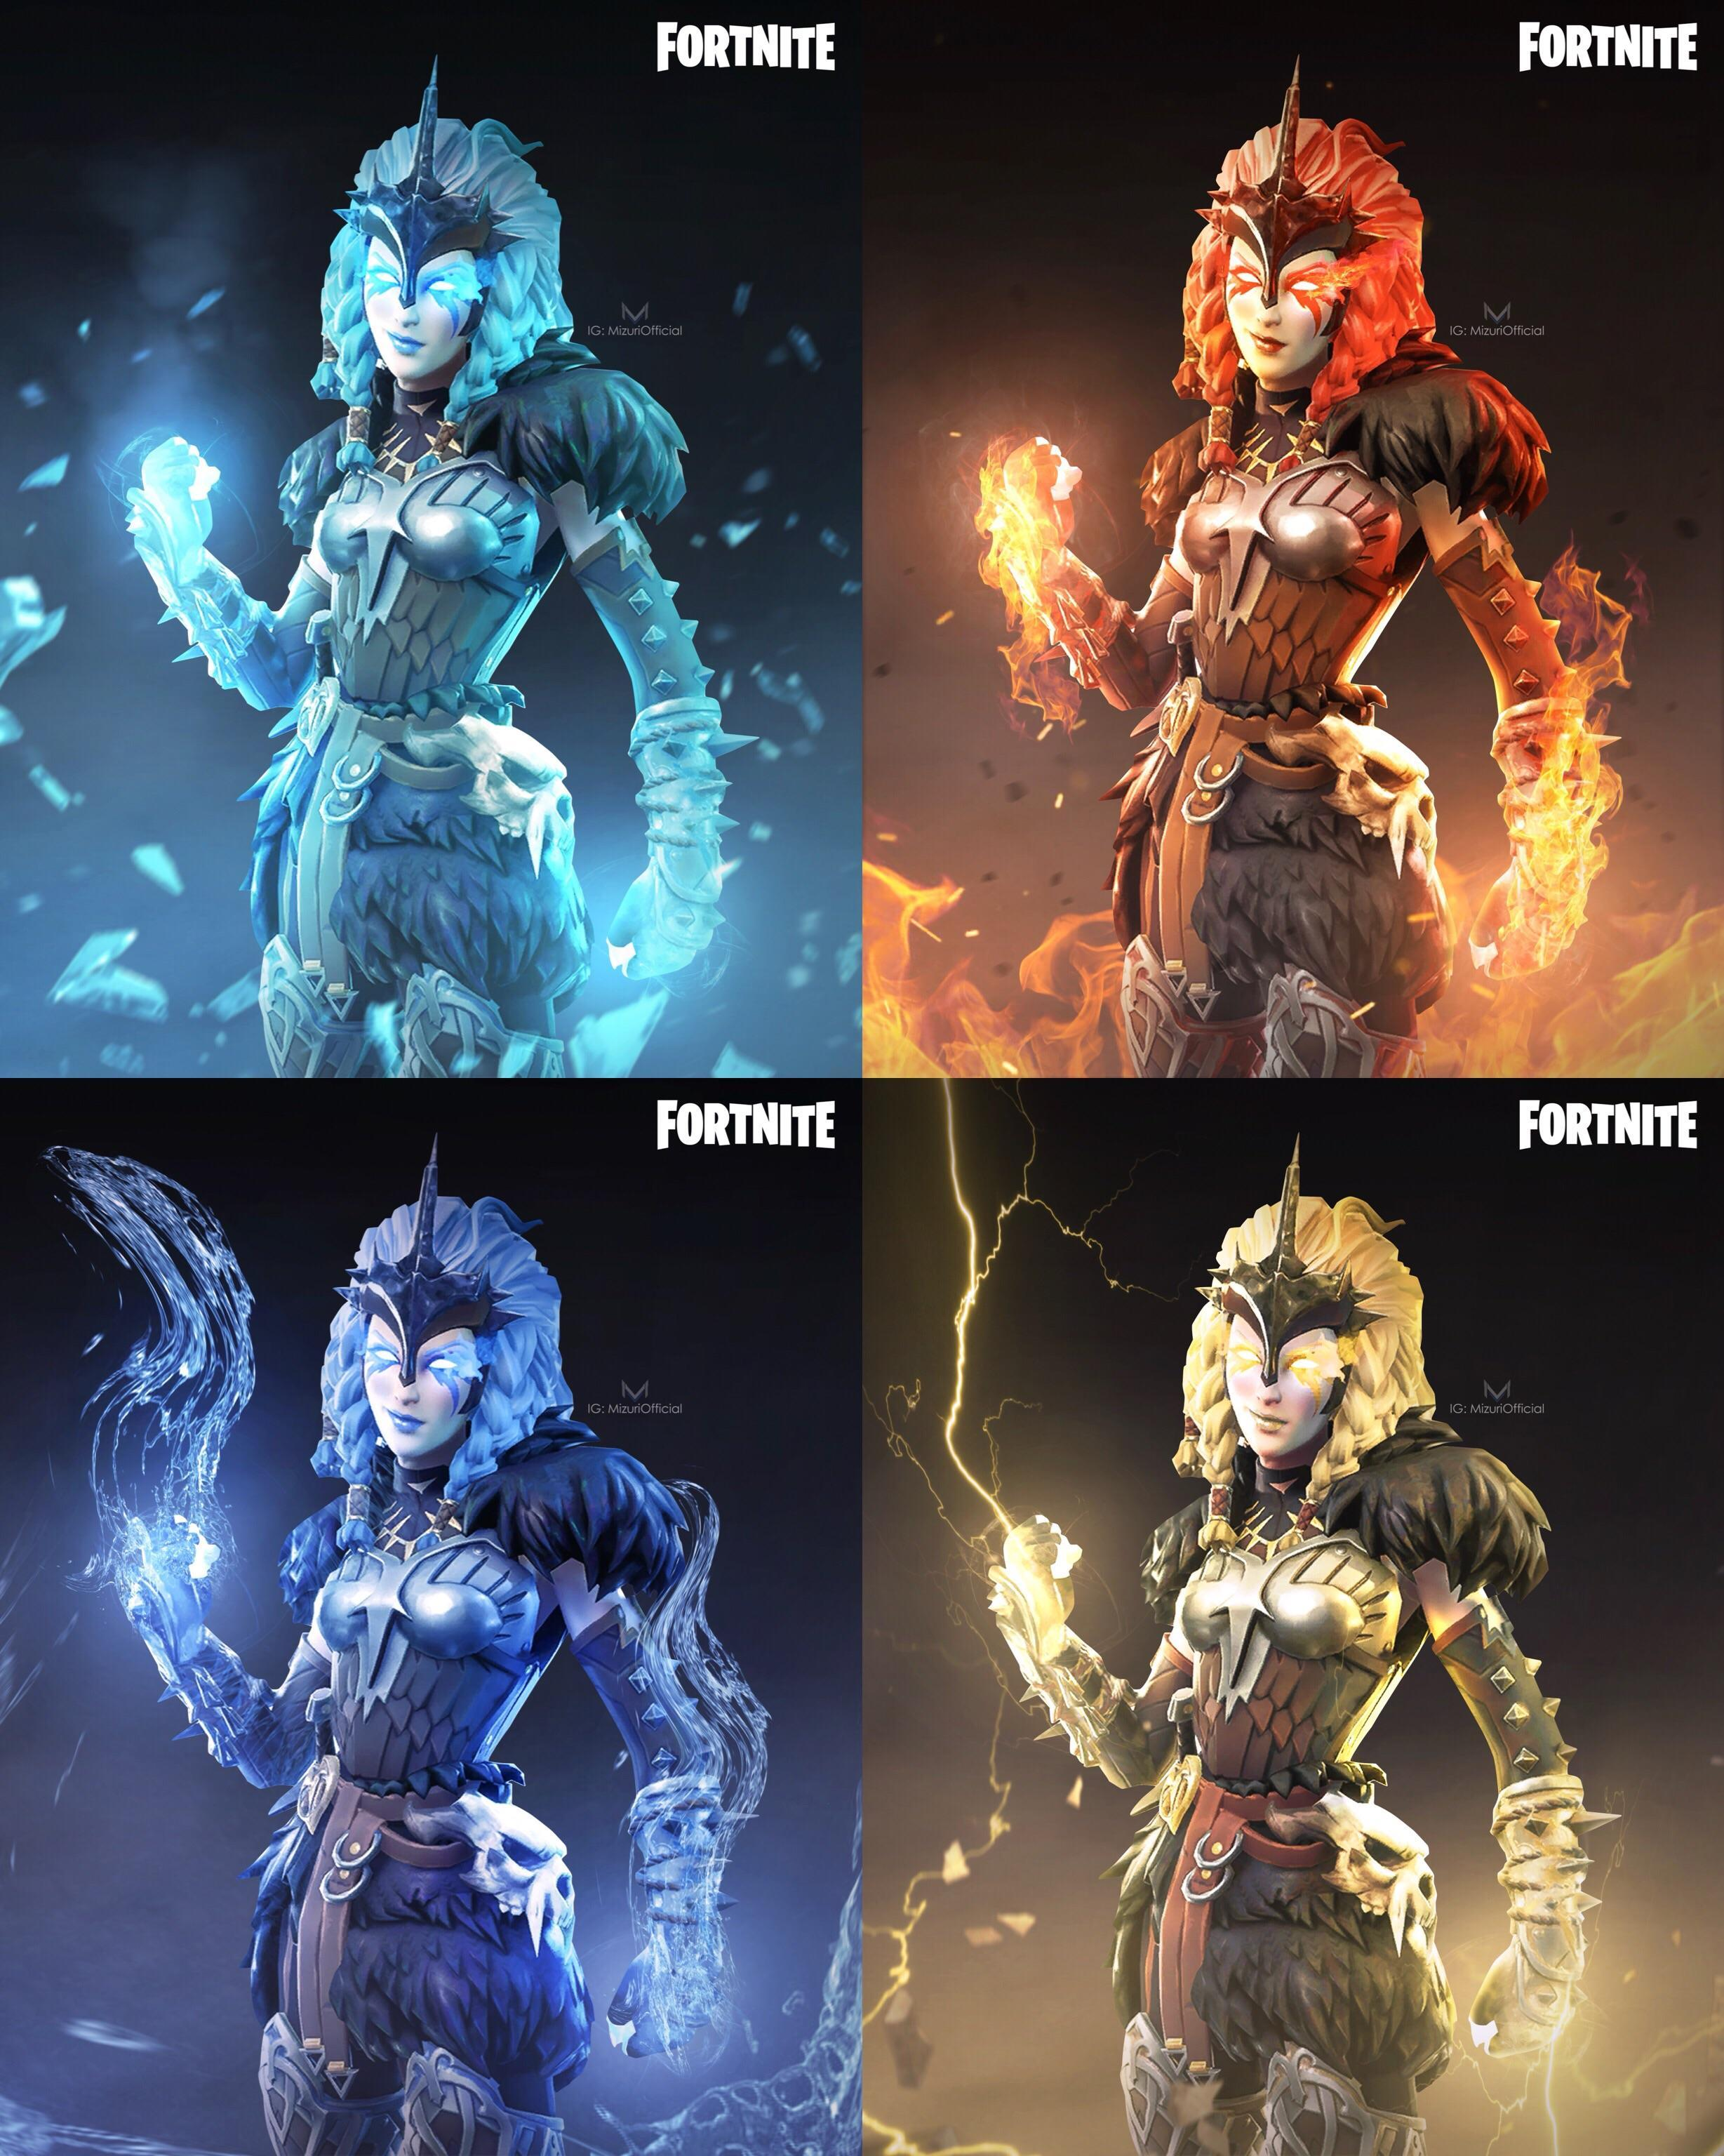 FORTNITE Elemental Valkyrie Concepts, Thoughts On The Concept .